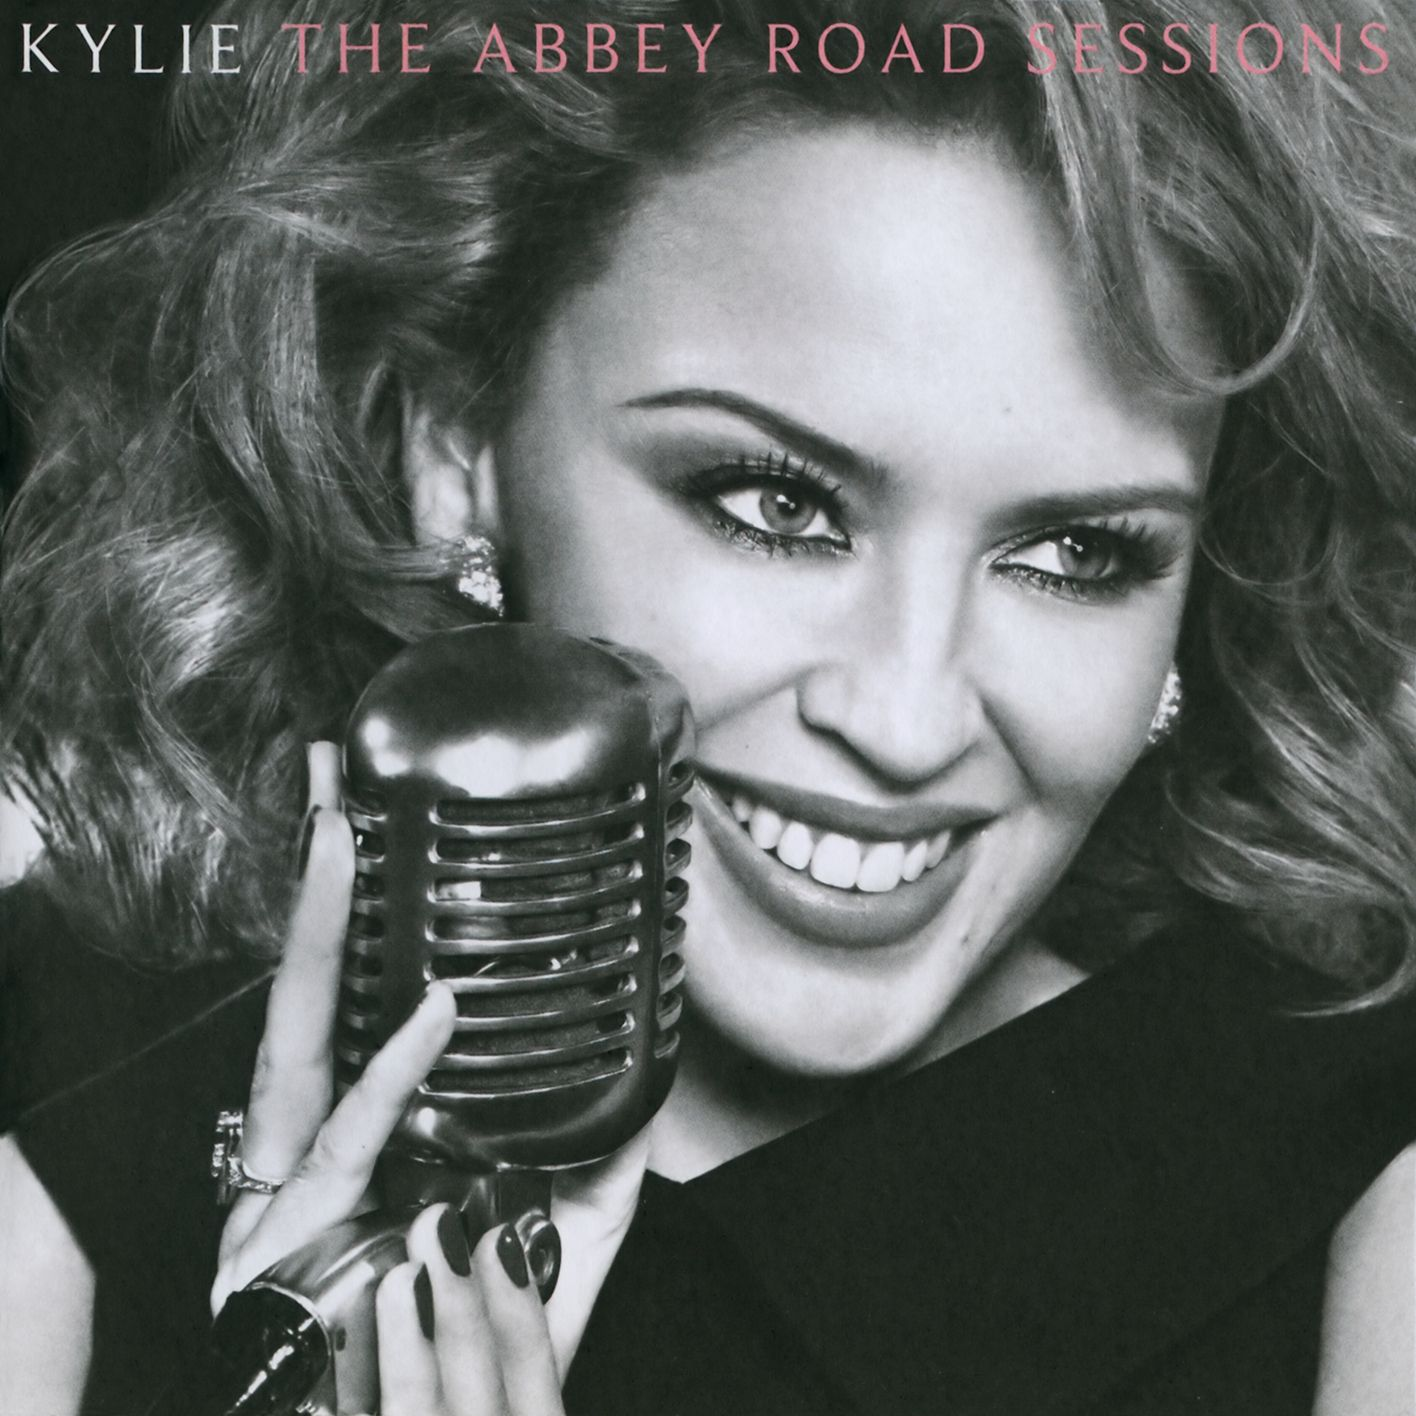 Kylie Minogue - The Abbey Road Sessions album cover